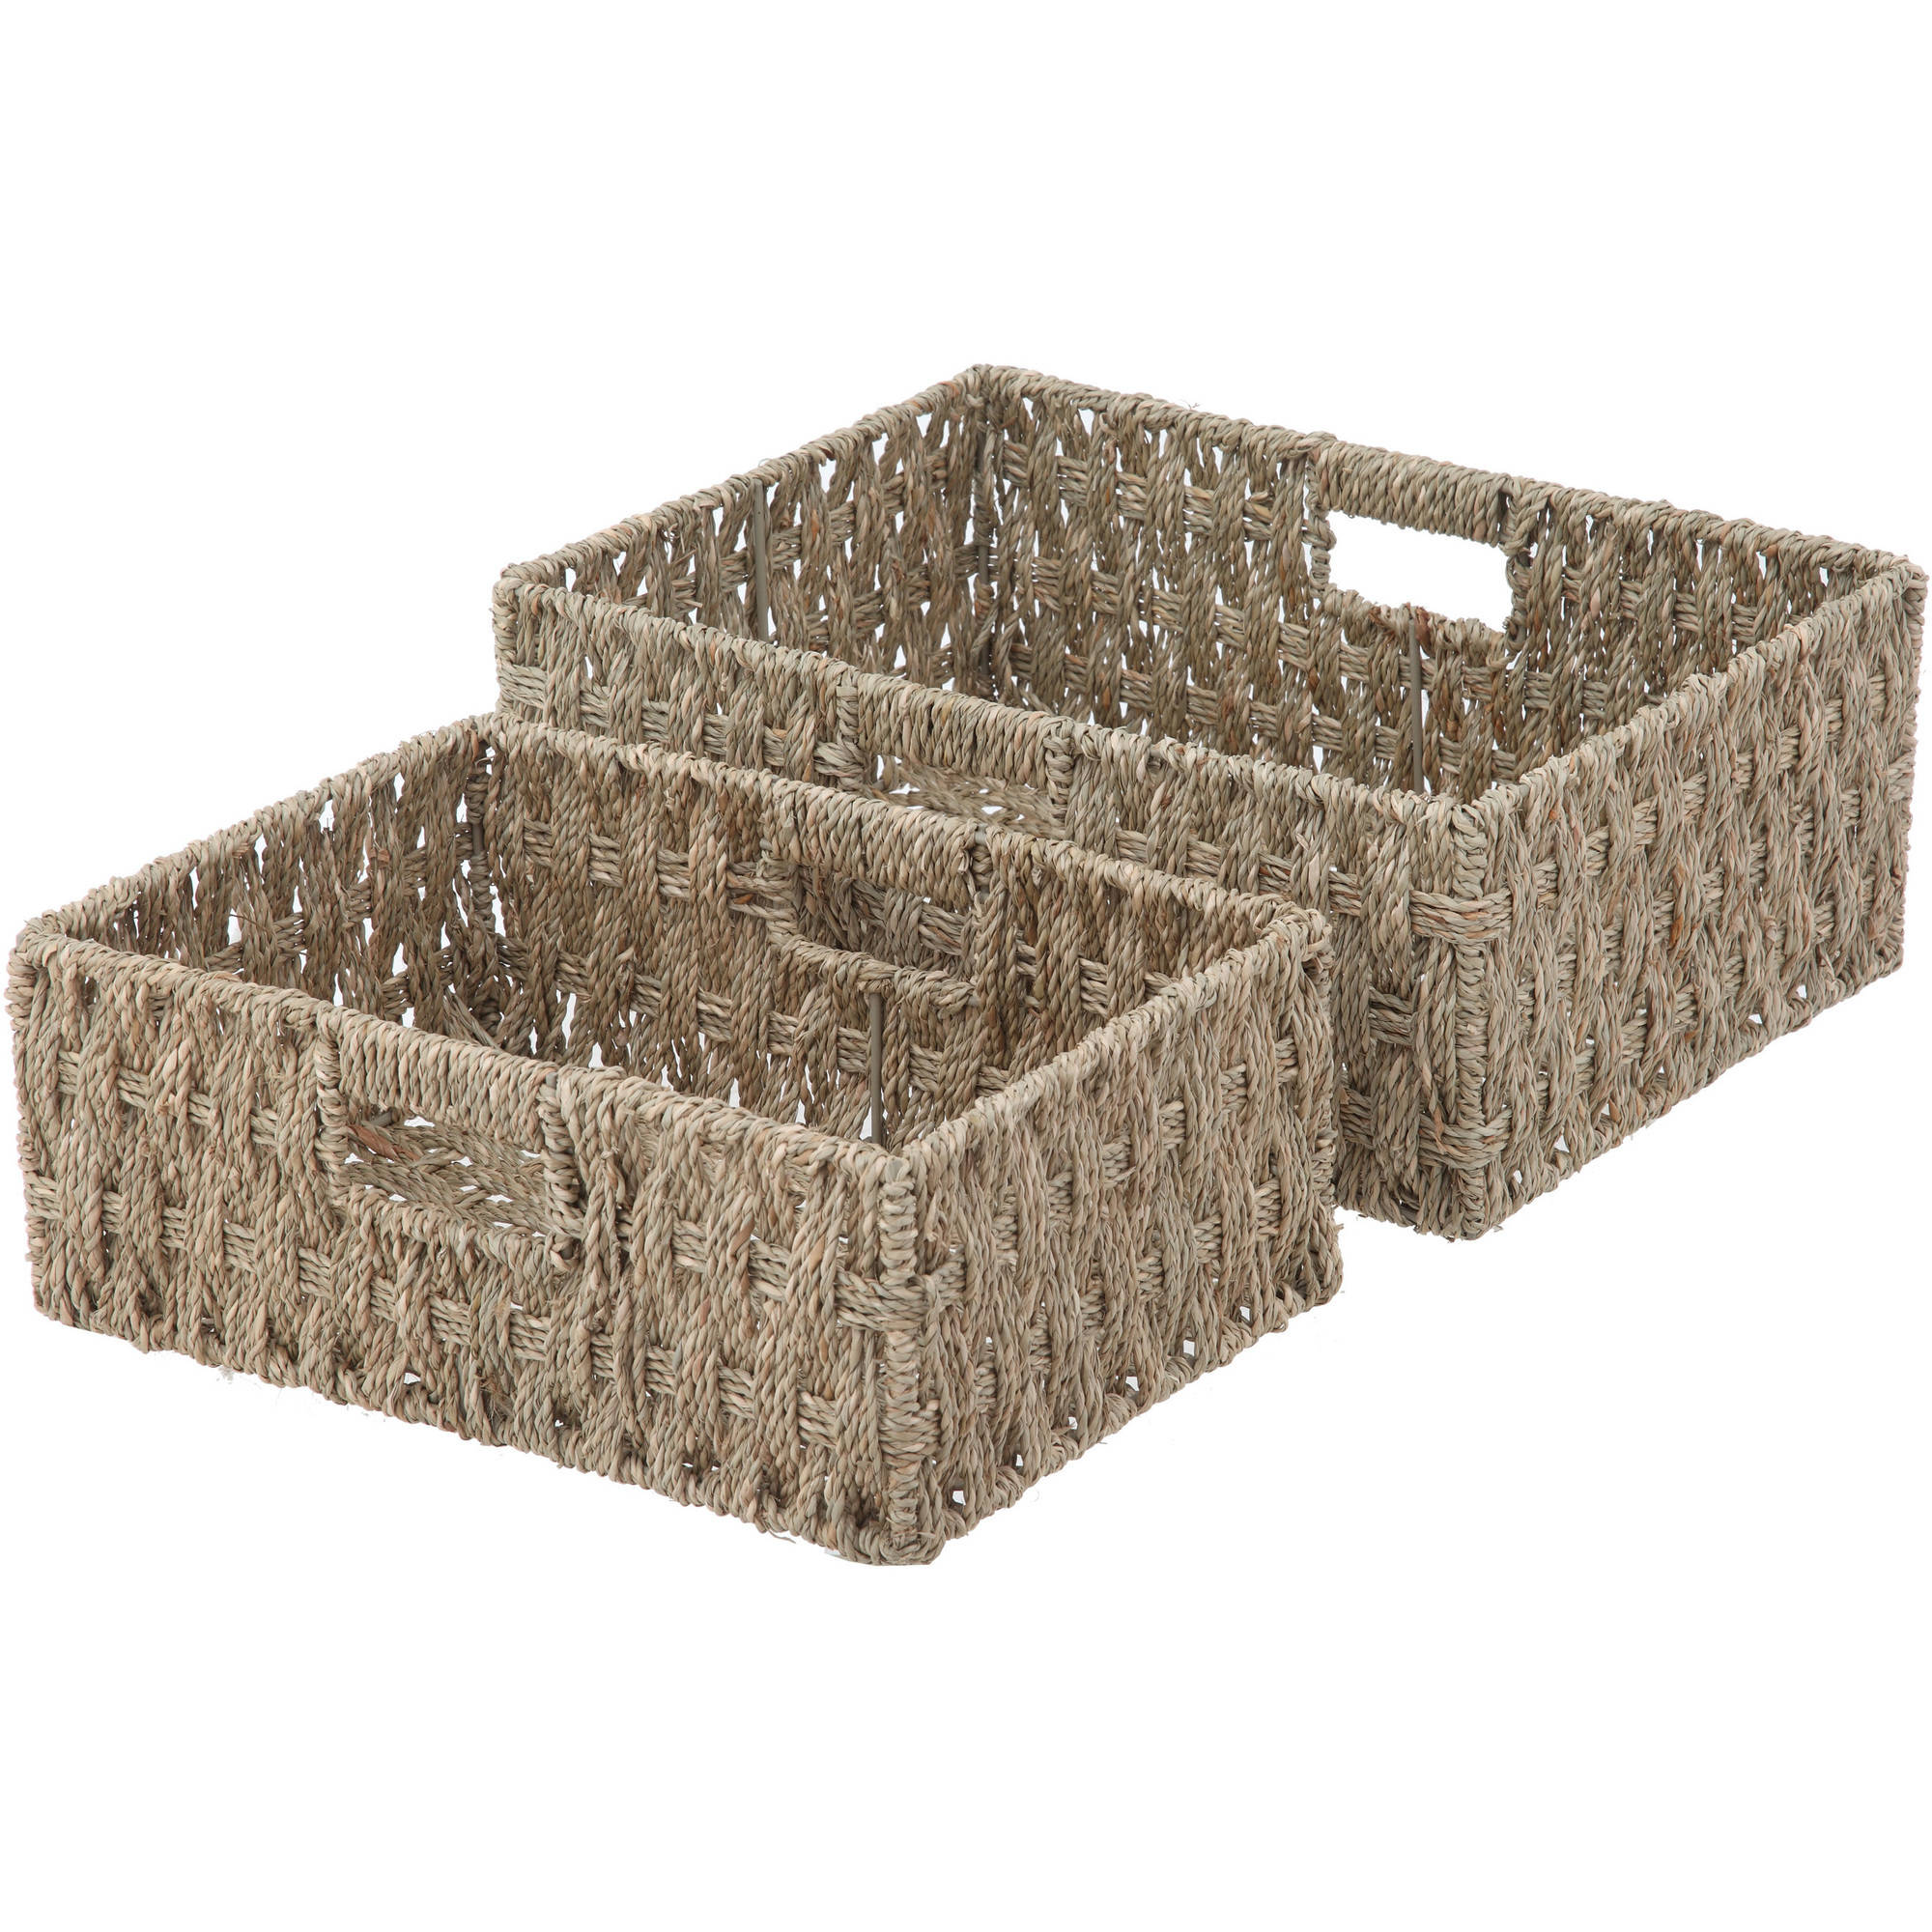 Mainstays Seagrass Baskets, 2pk